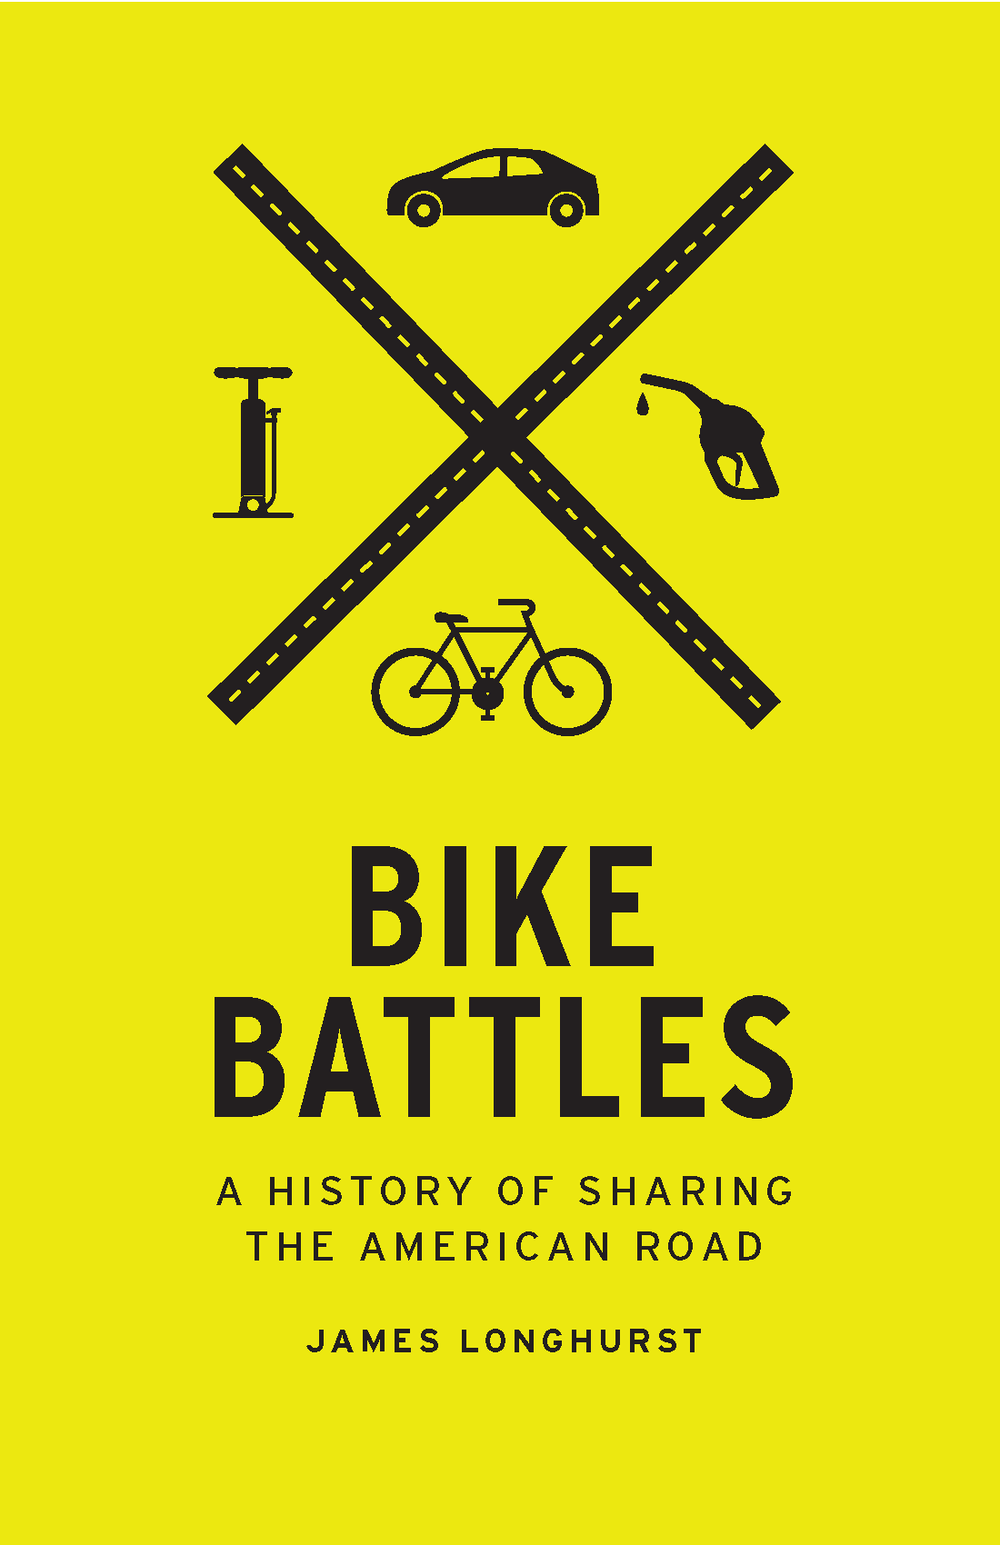 Bike Battles book cover.  (University of Washington Press, 2015)